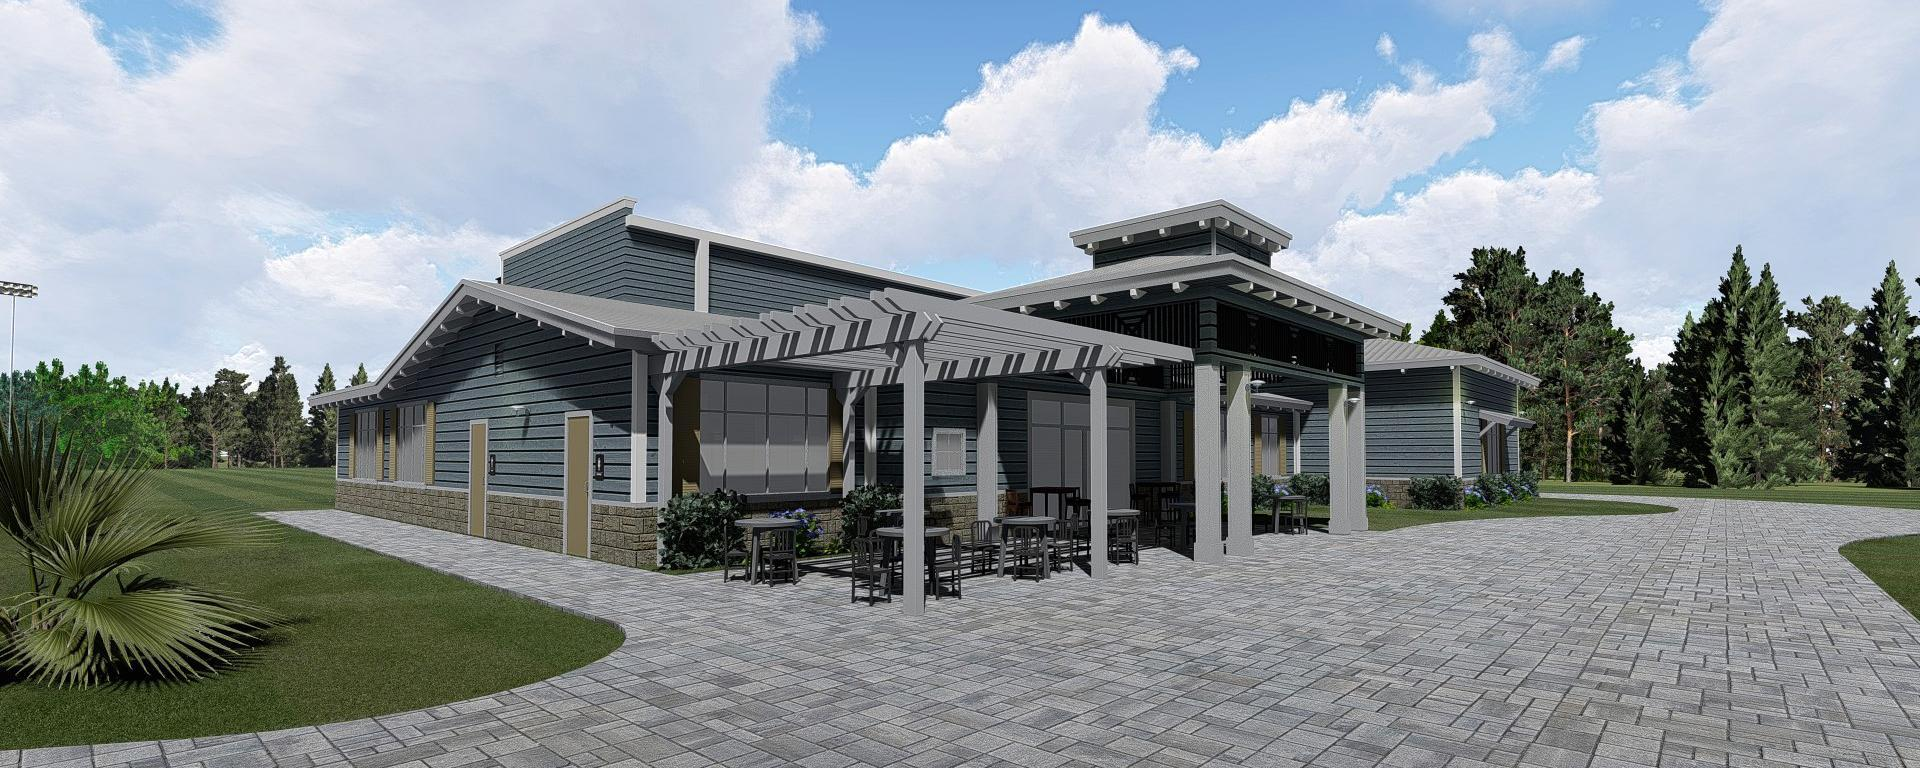 Rendering of the side view of the proposed clubhouse